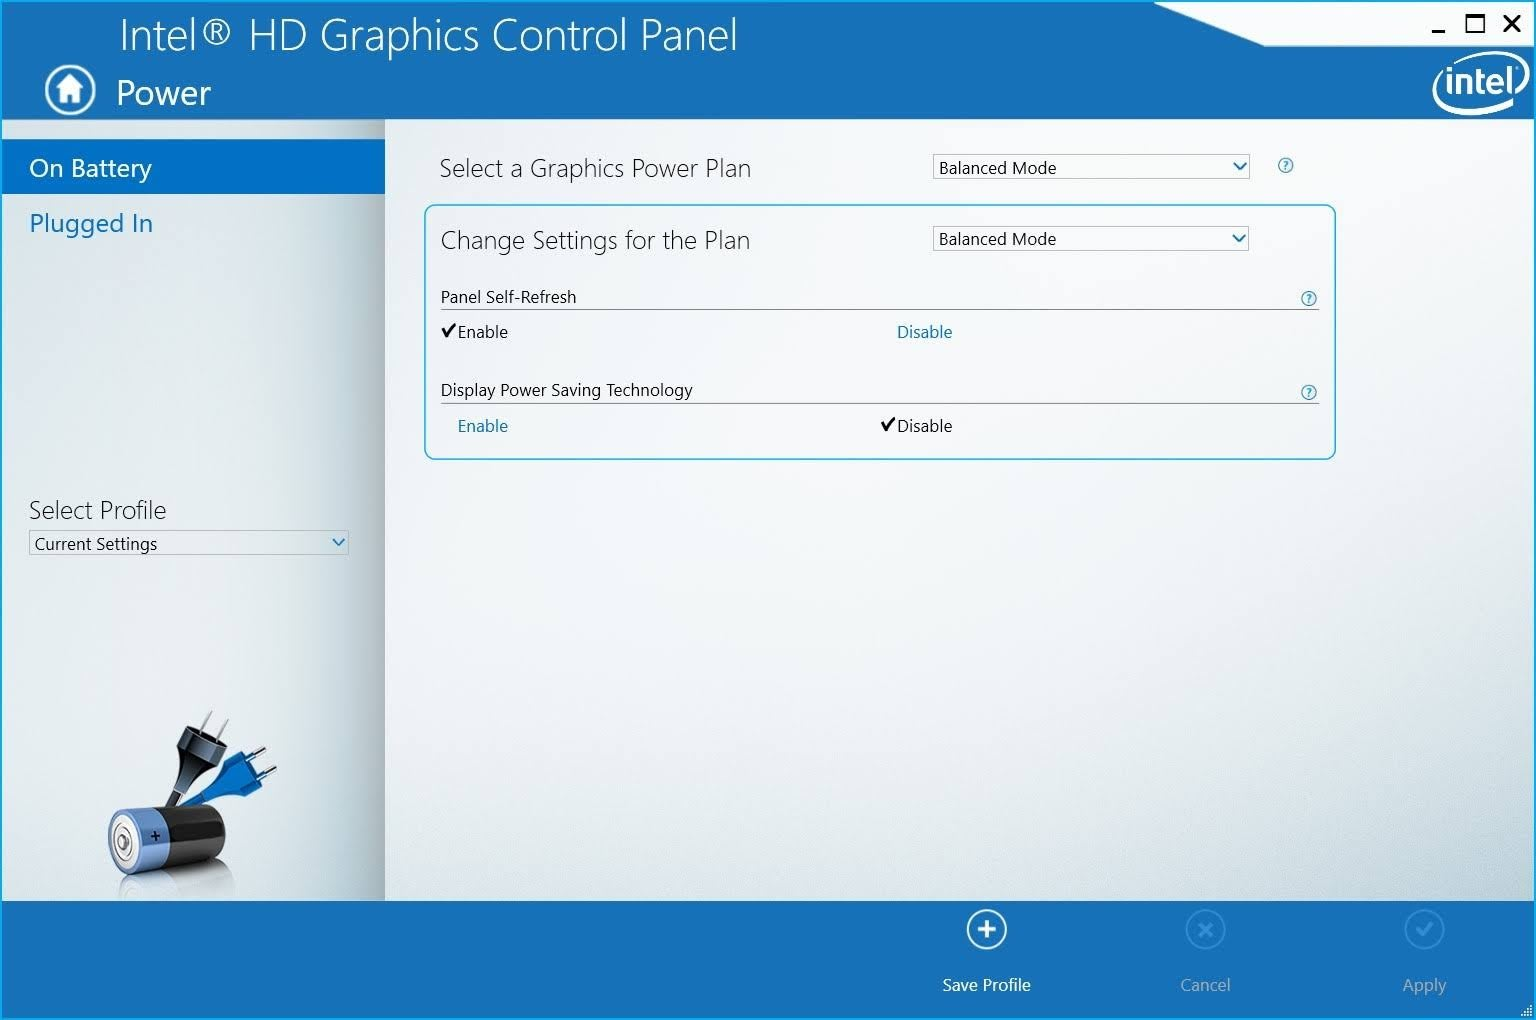 Intel HD Grapgics Control Panel setting